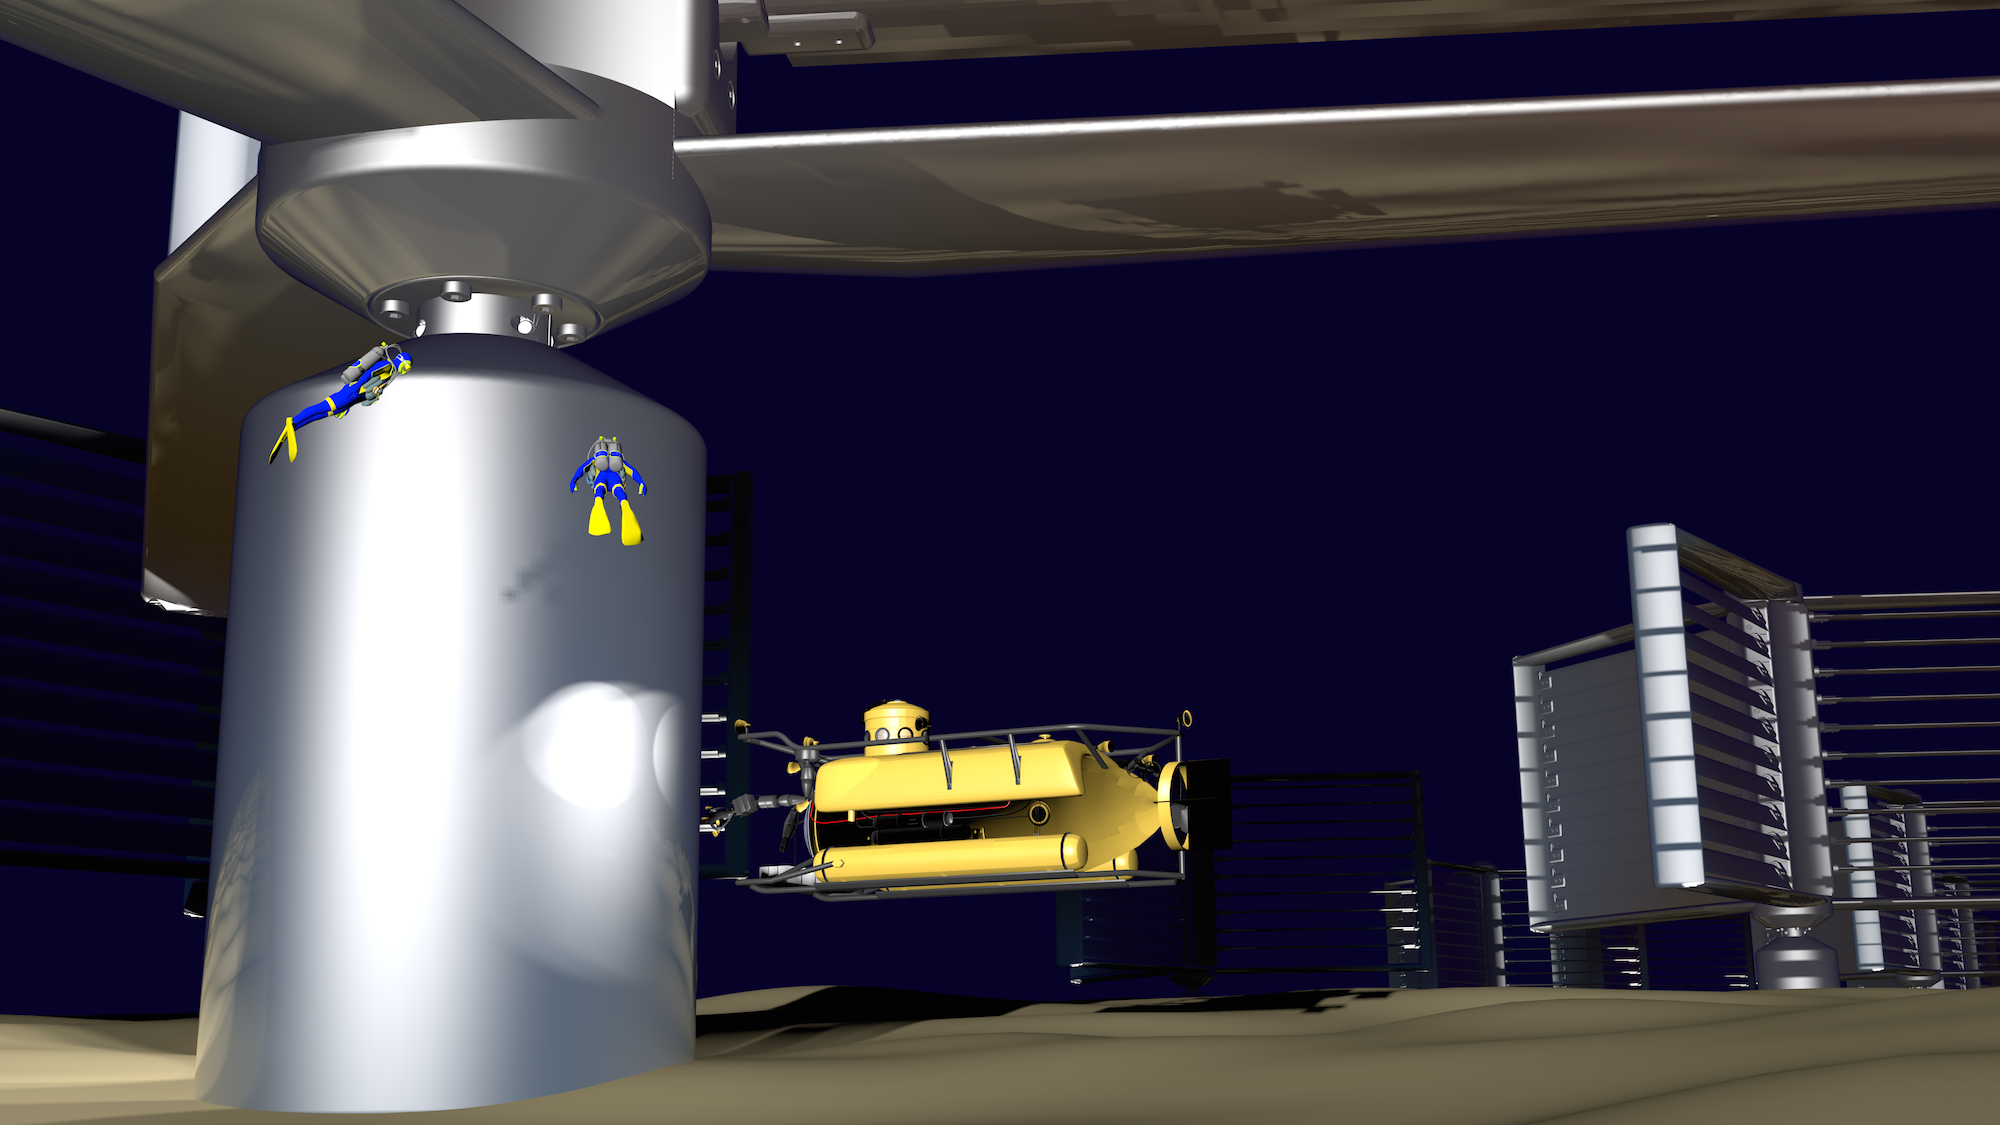 Ocean Energy Turbine Farm Small